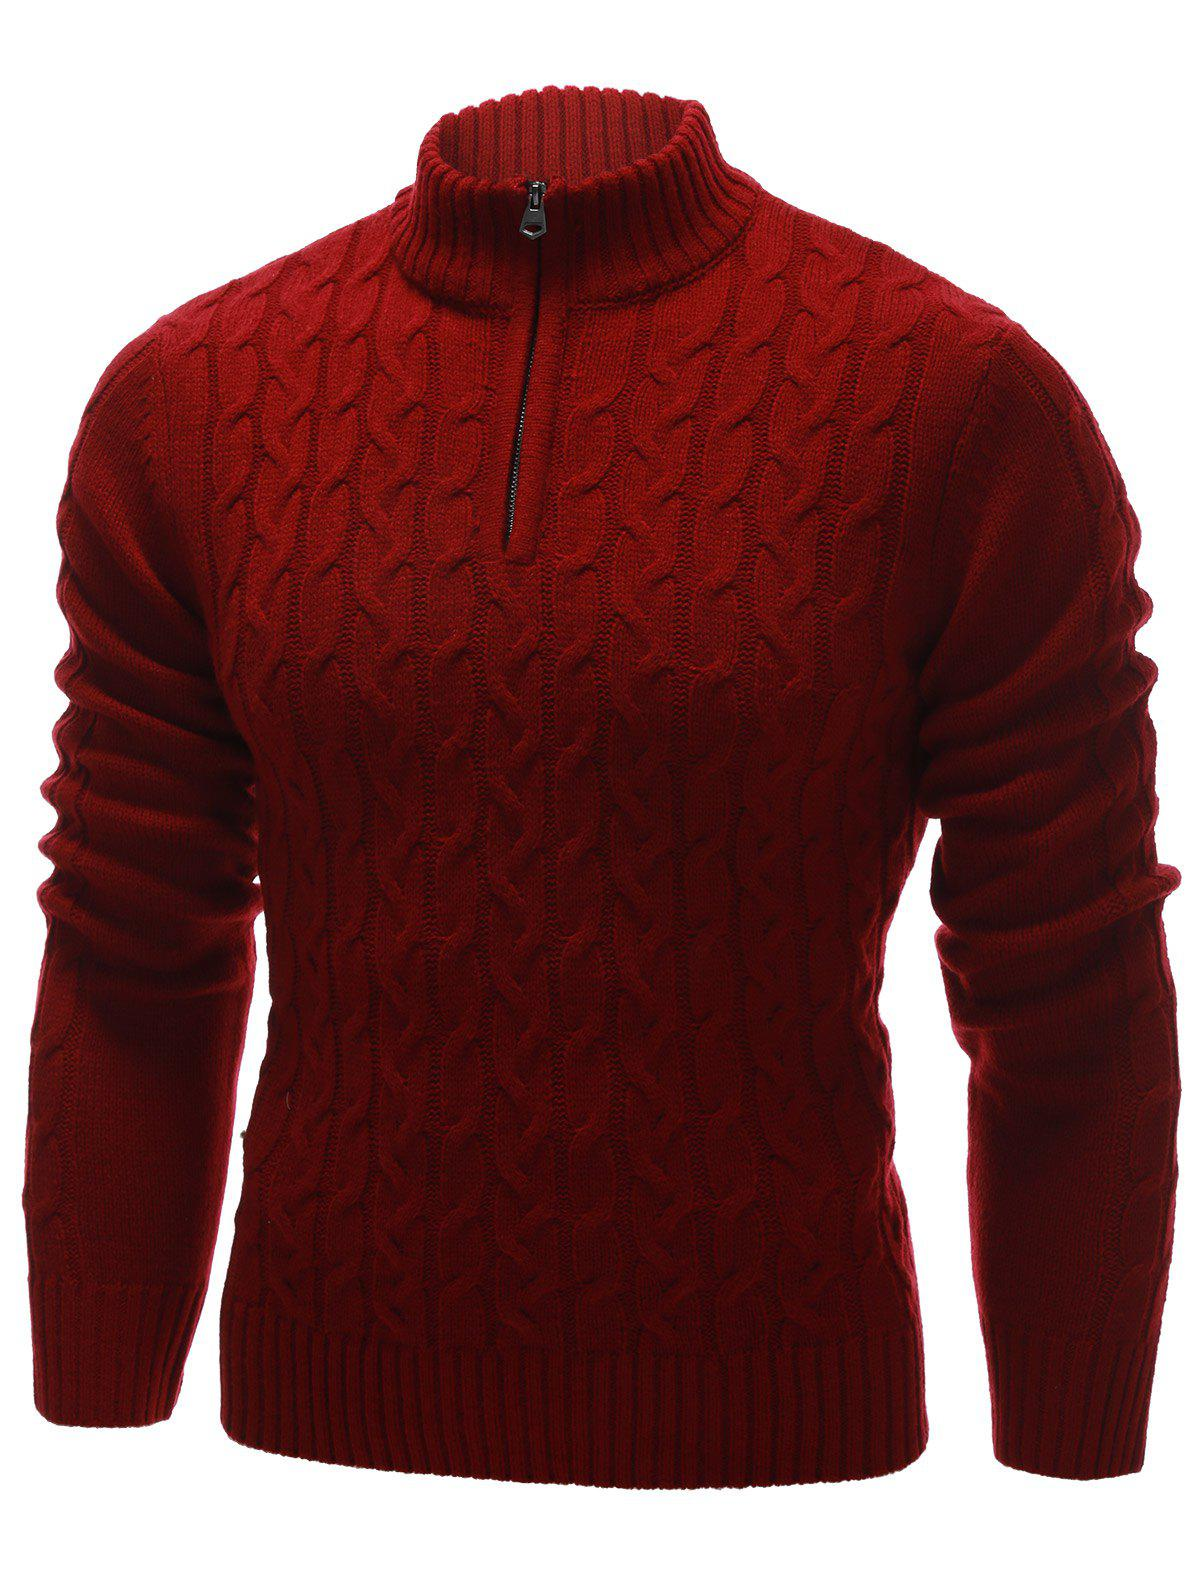 2018 Cable Knit Half Zip Up Pullover Sweater RED XL In Cardigans ...